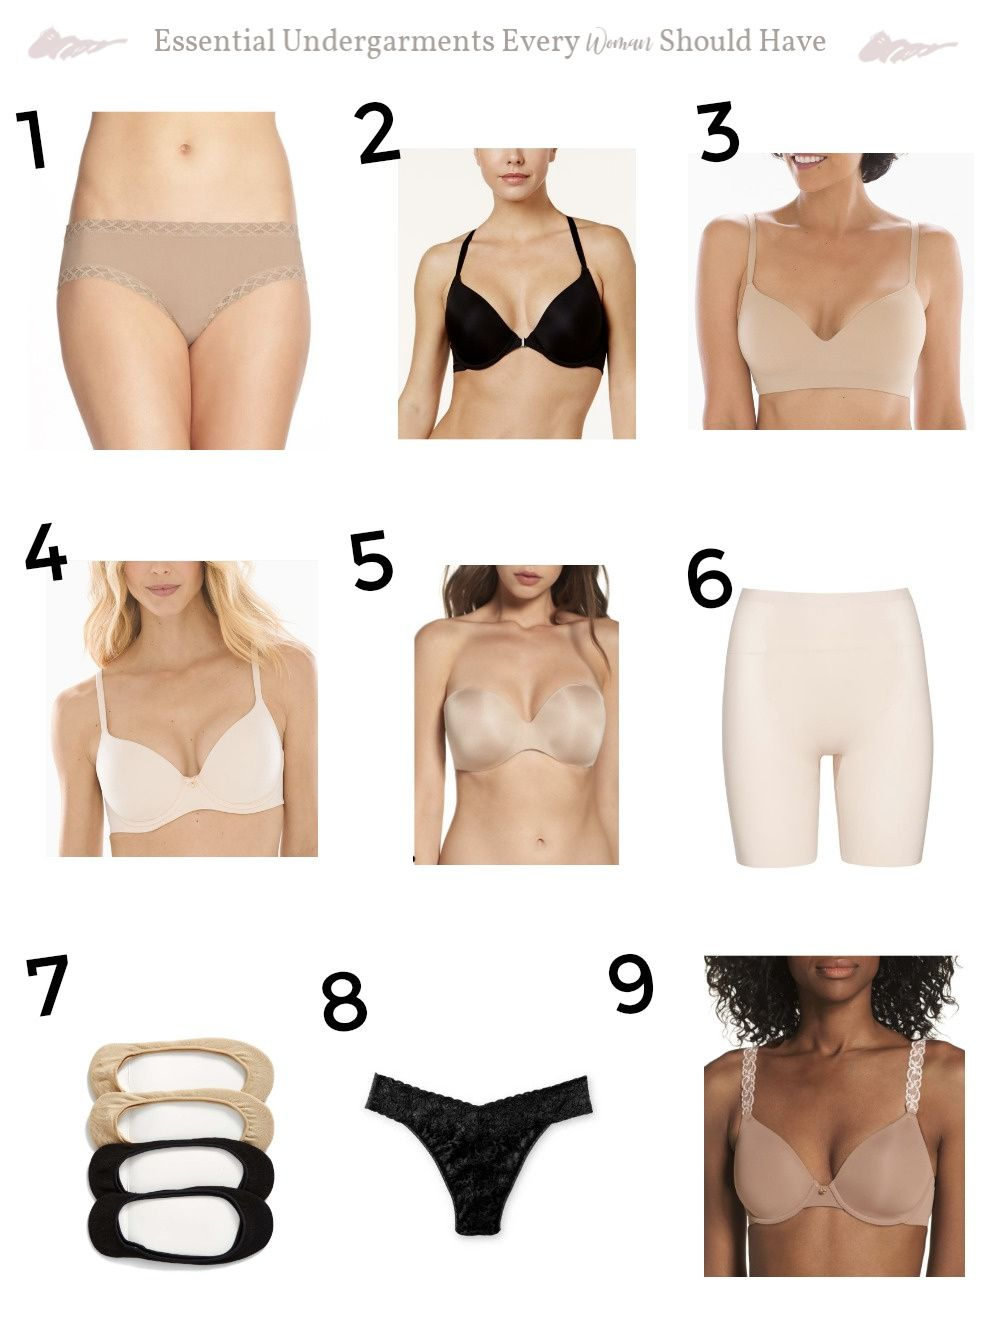 8346121c10 Essential Undergarments Every Woman Should Have. This is what you should  wear under your clothes. by Cyndispivey.com  essentialundergarments   bestunderwear ...